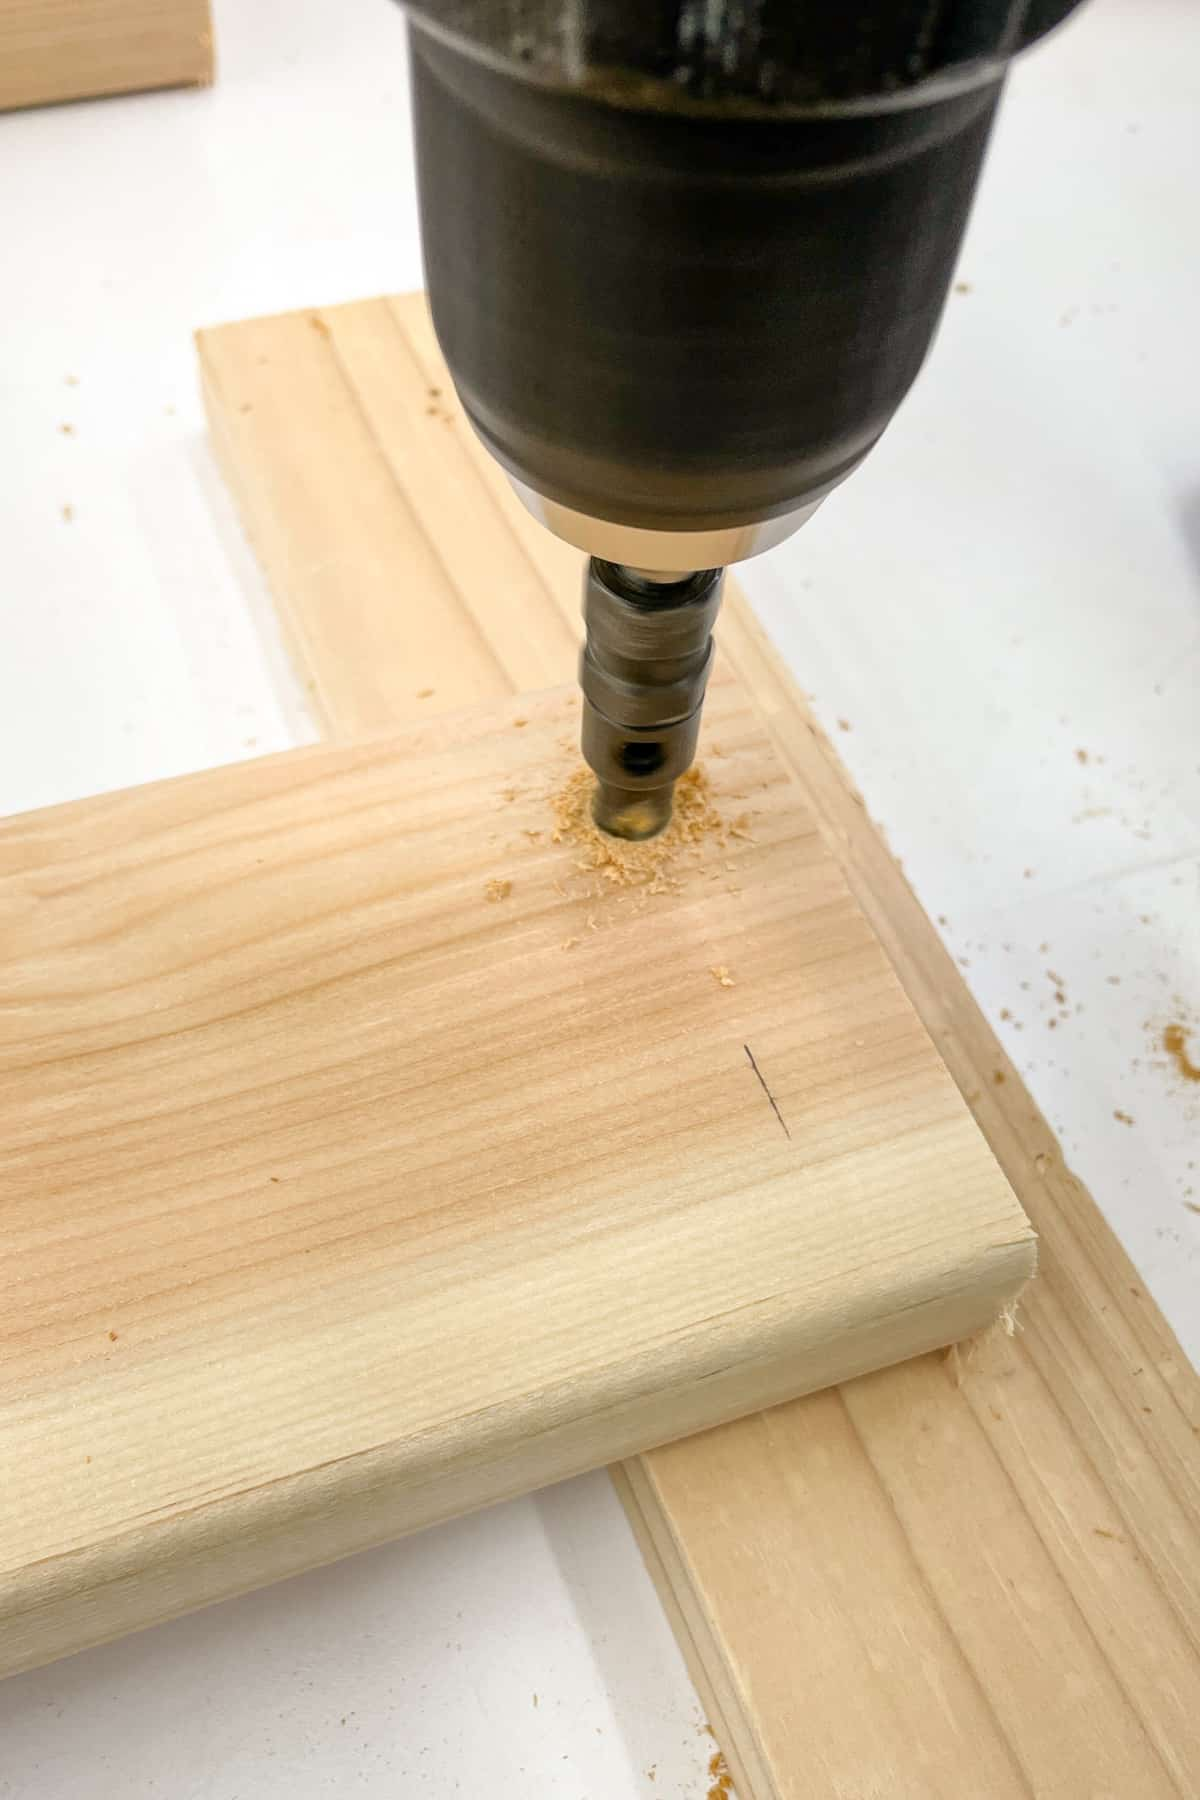 drilling a countersink hole in the ends of the plant shelf slats